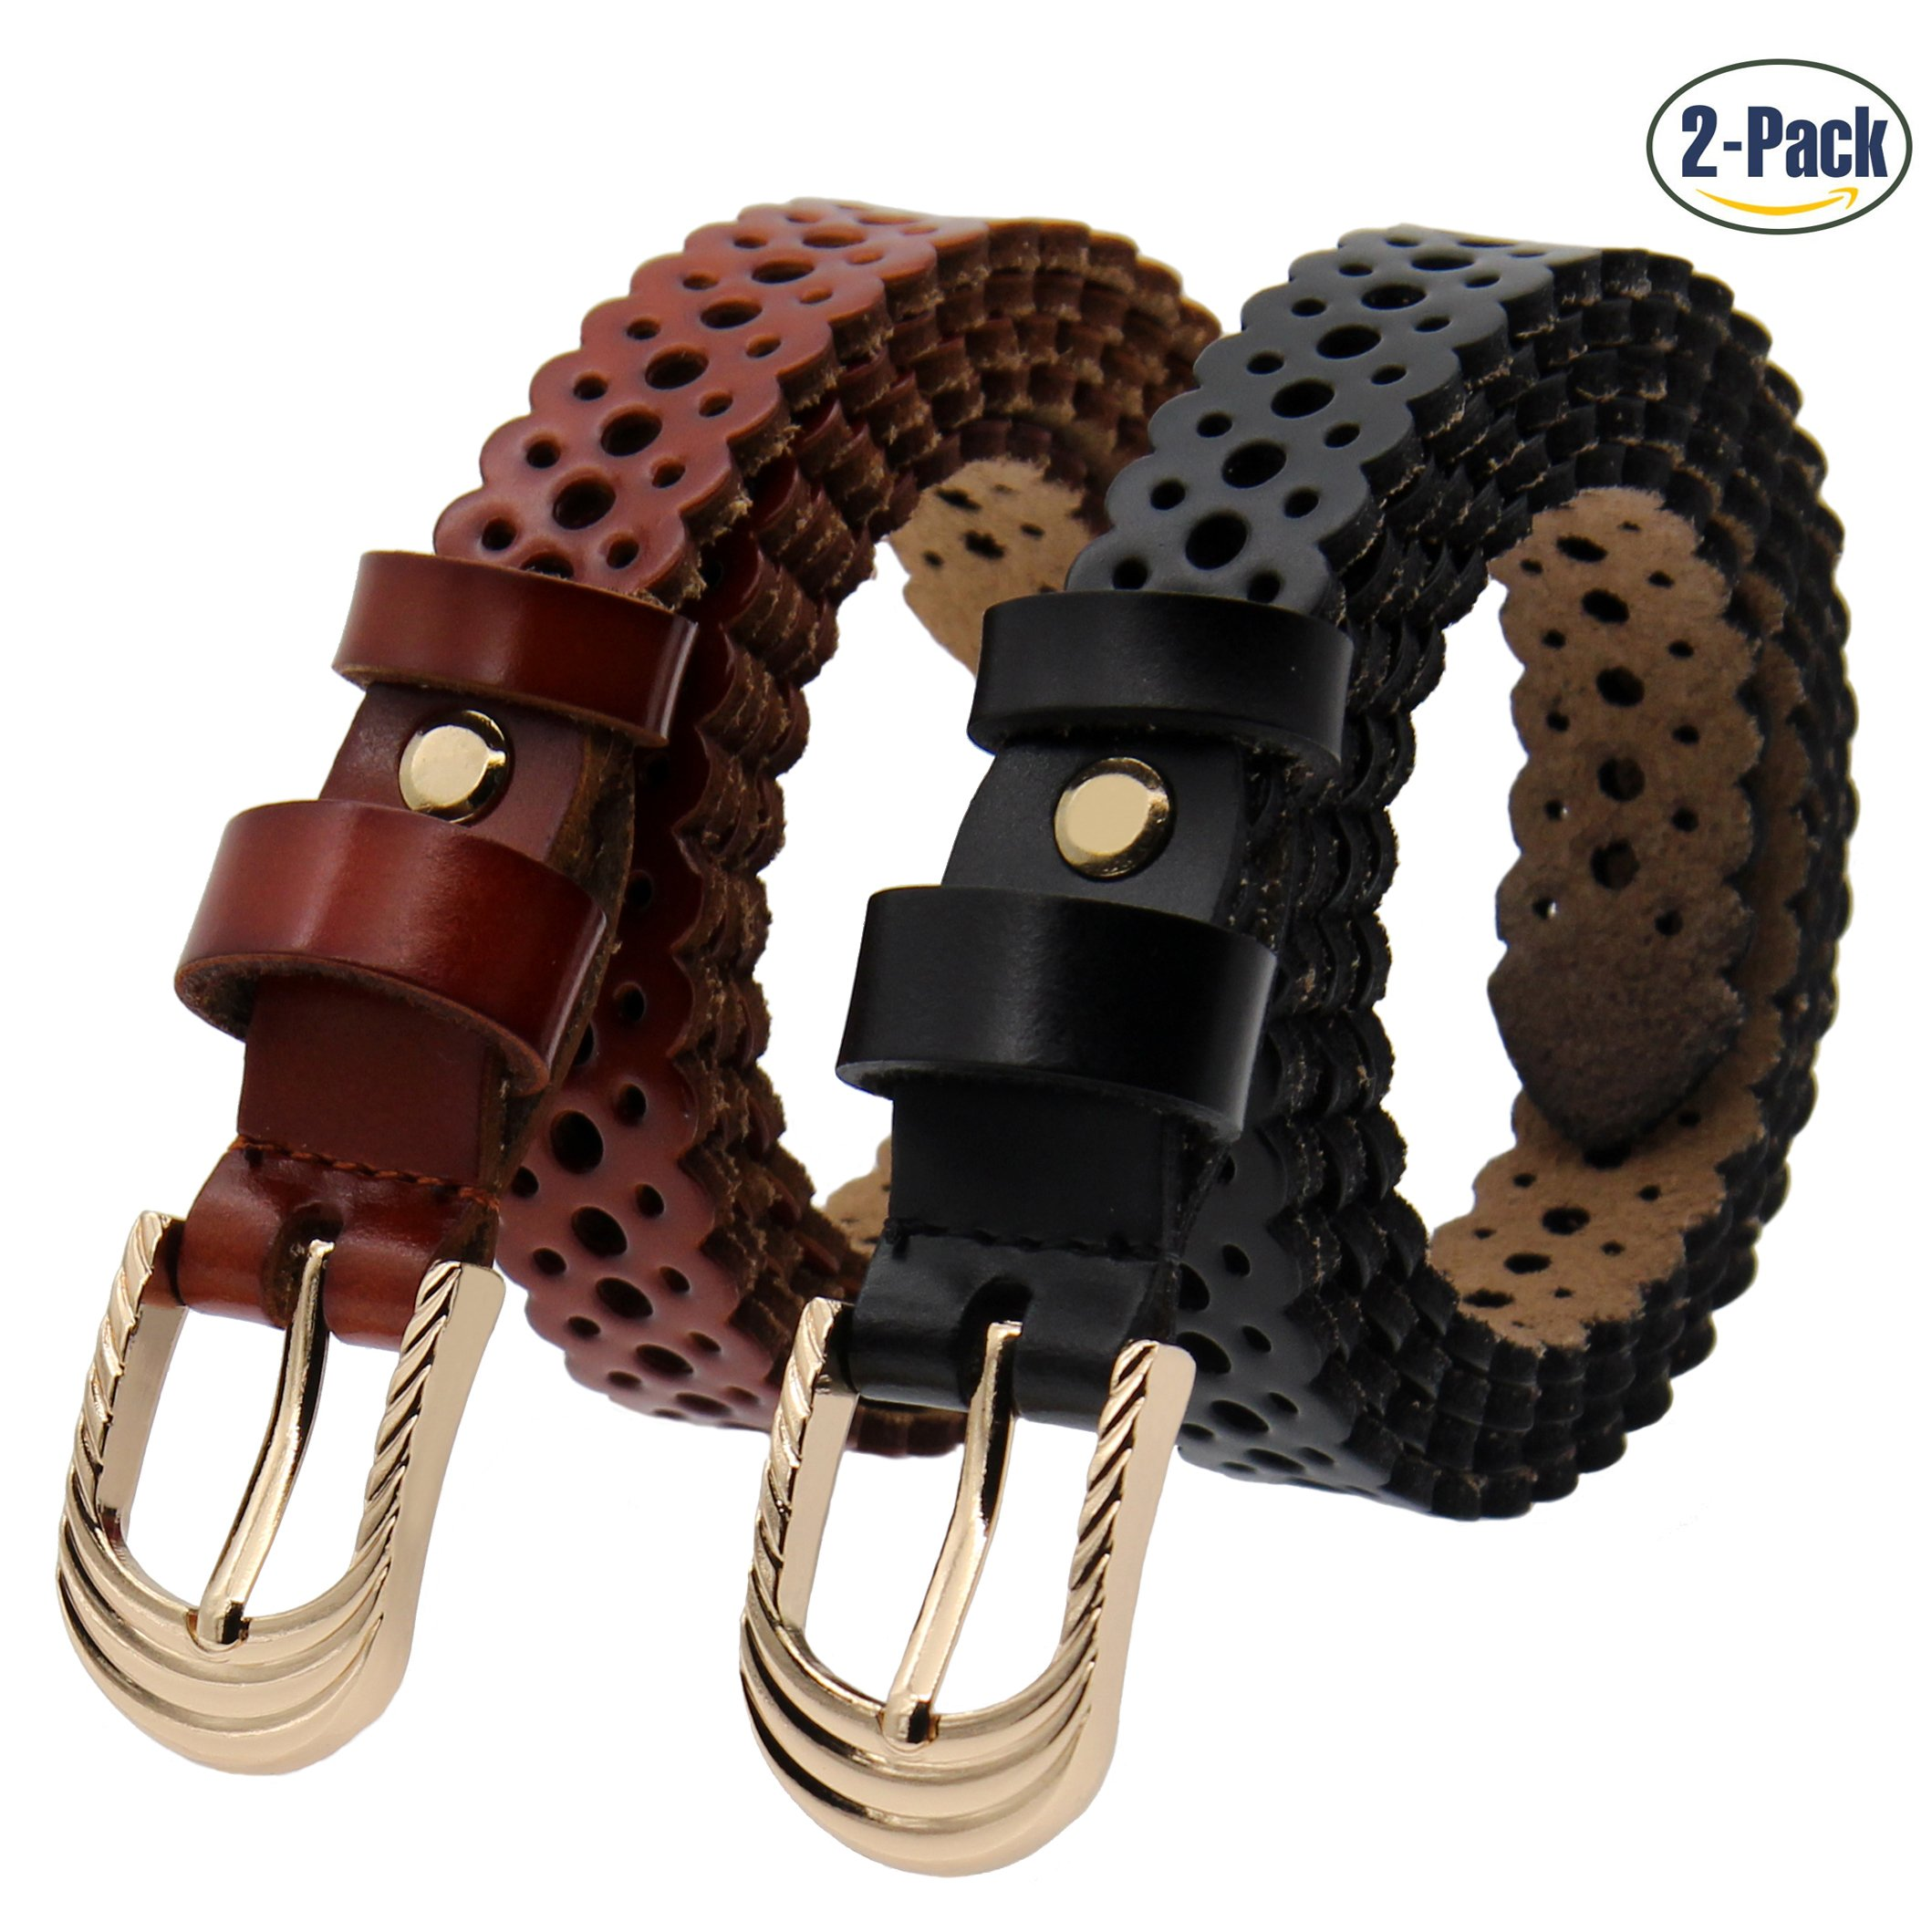 Set of 2 Women's Genuine Cowhide Leather Belt Ladies Vintage Casual Belts for Jeans Shorts Pants Summer Dress for Women With Alloy Pin Buckle By ANDY GRADE (Style 1)